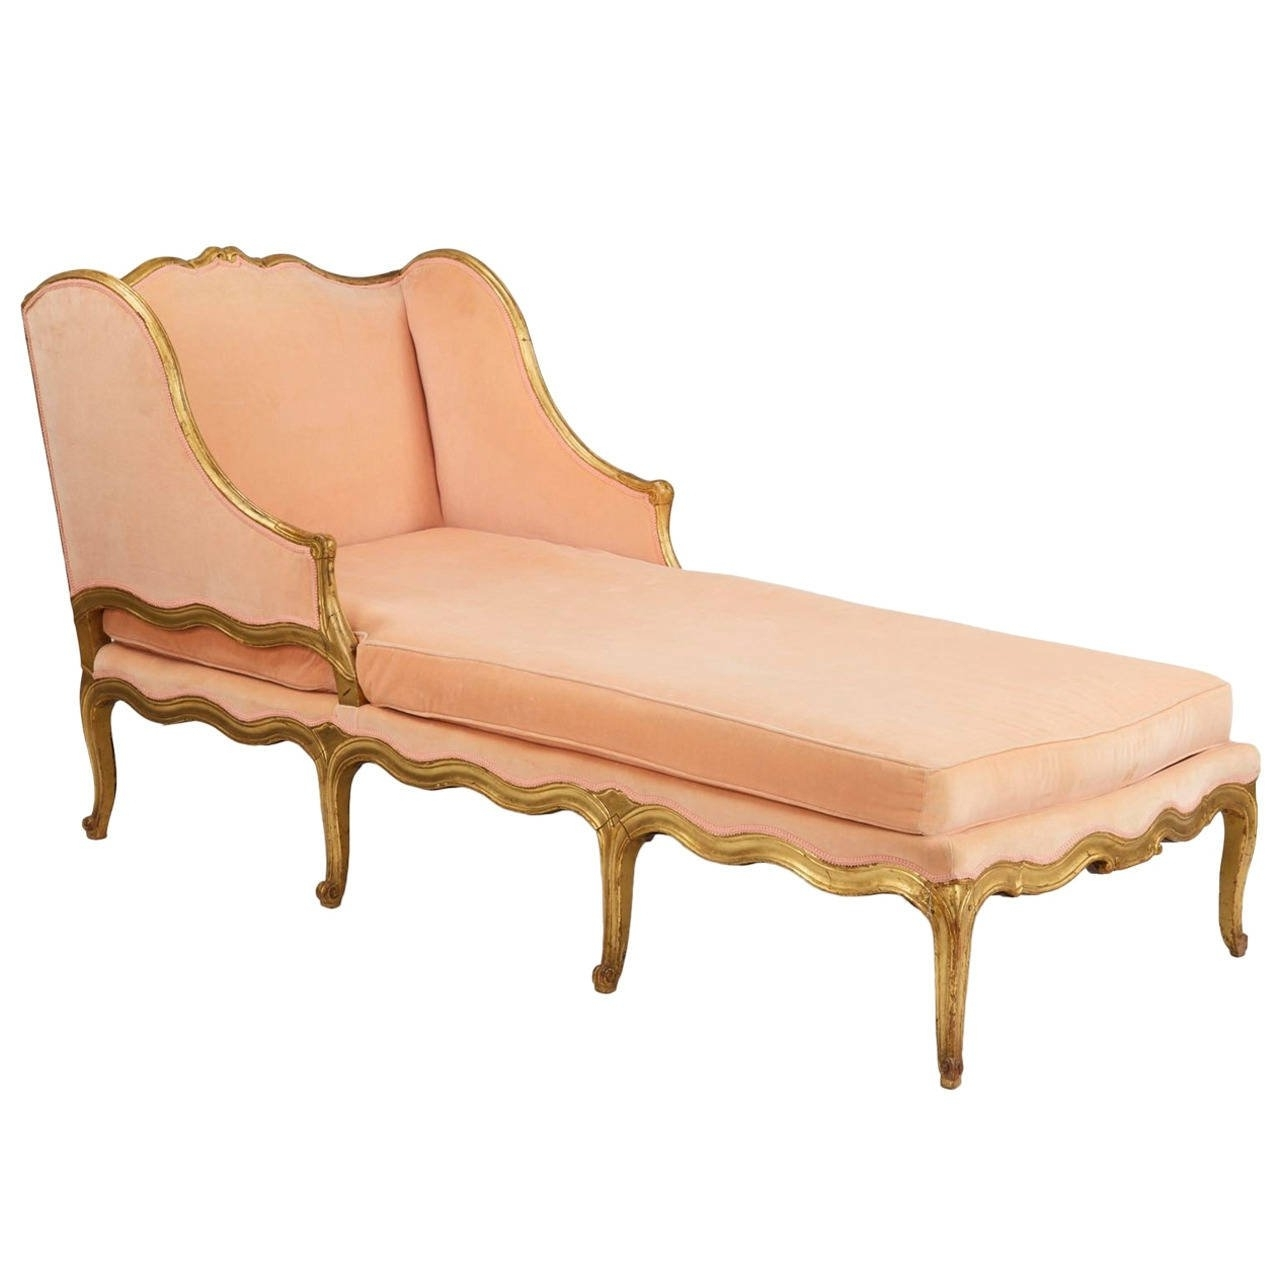 Recent French Louis Xv Style Giltwood Antique Chaise Longue Lounge Settee Regarding Antique Chaise Lounges (View 13 of 15)